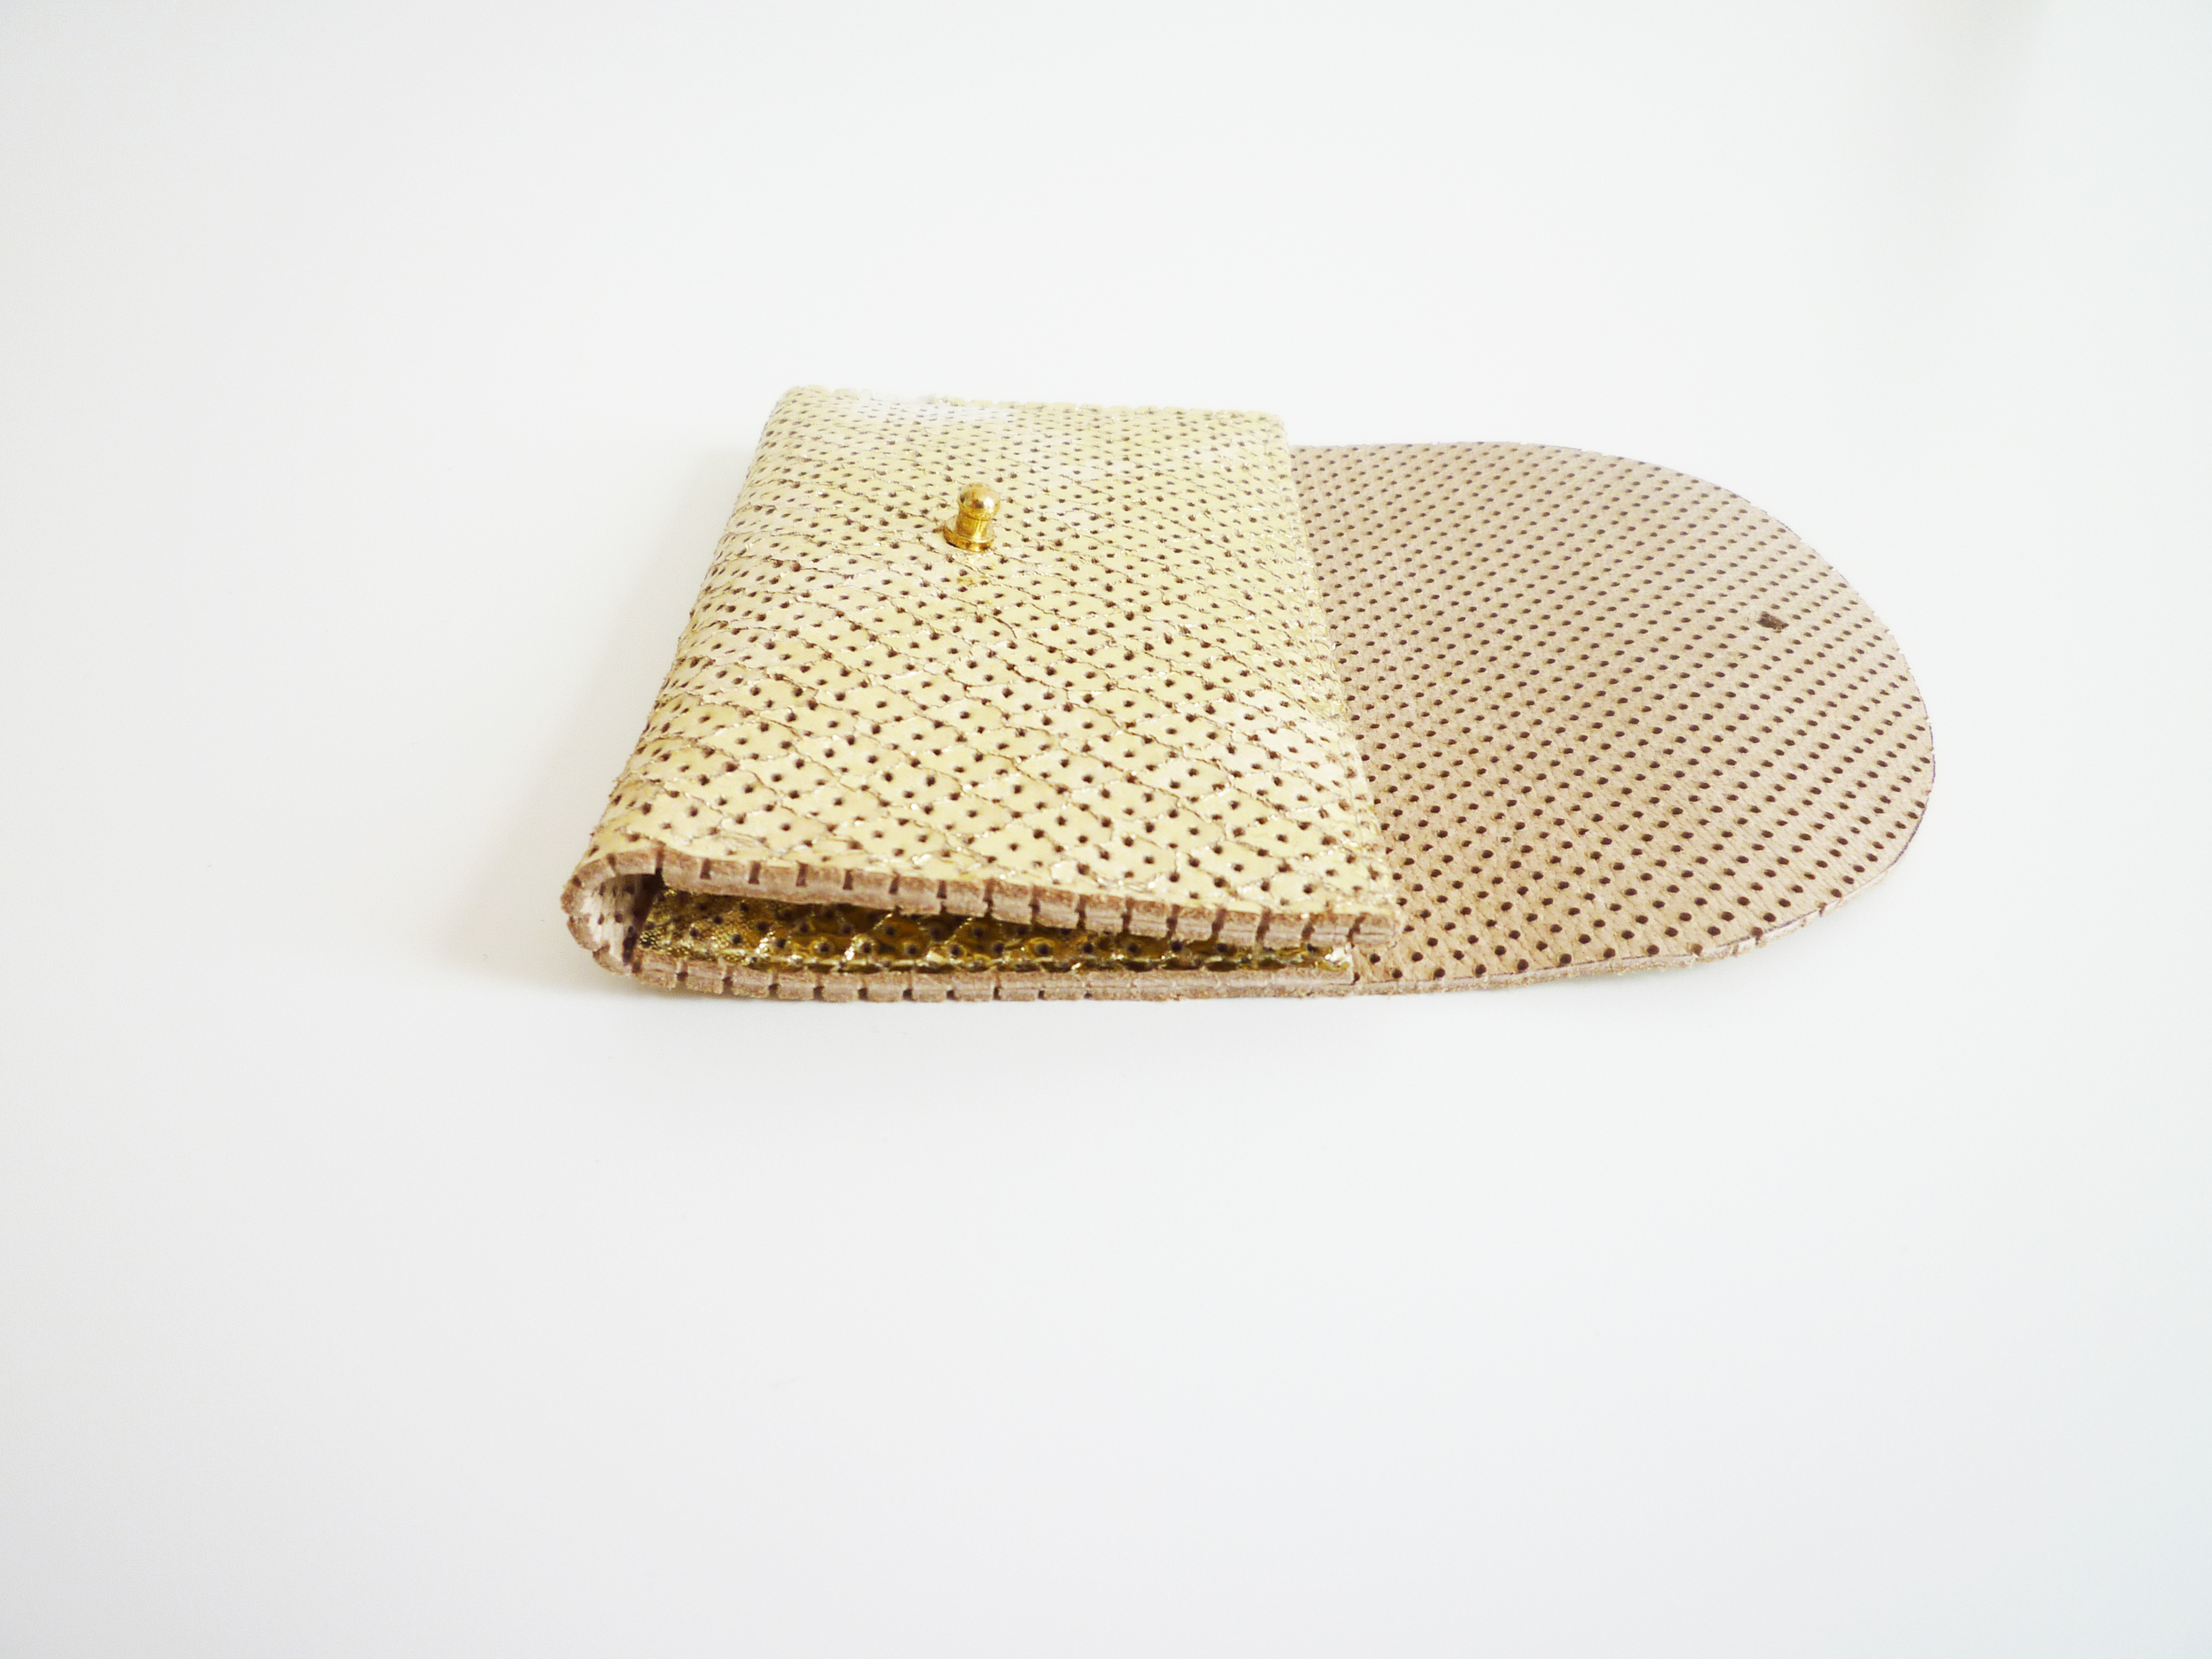 Perforated Leather Foiled Gold Travel Card Holder.JPG